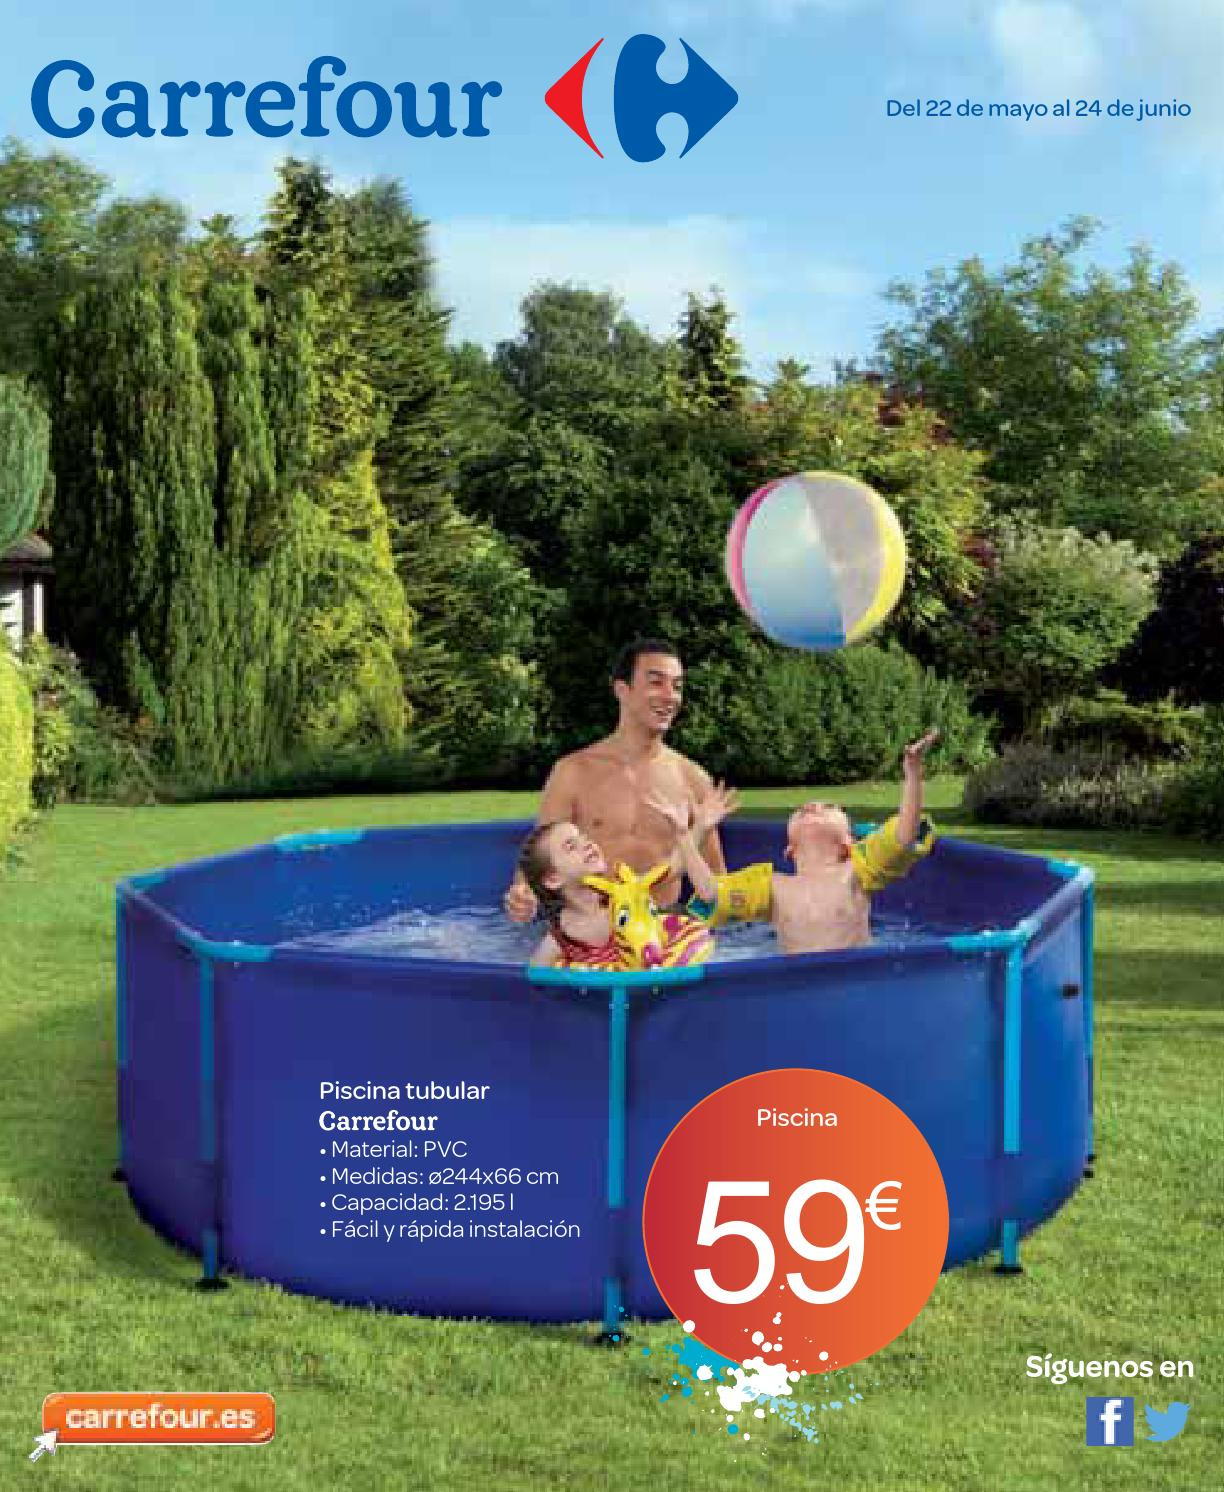 Catalogo De Piscinas Desmontables Carrefour Piscina Desmontable En Carrefour